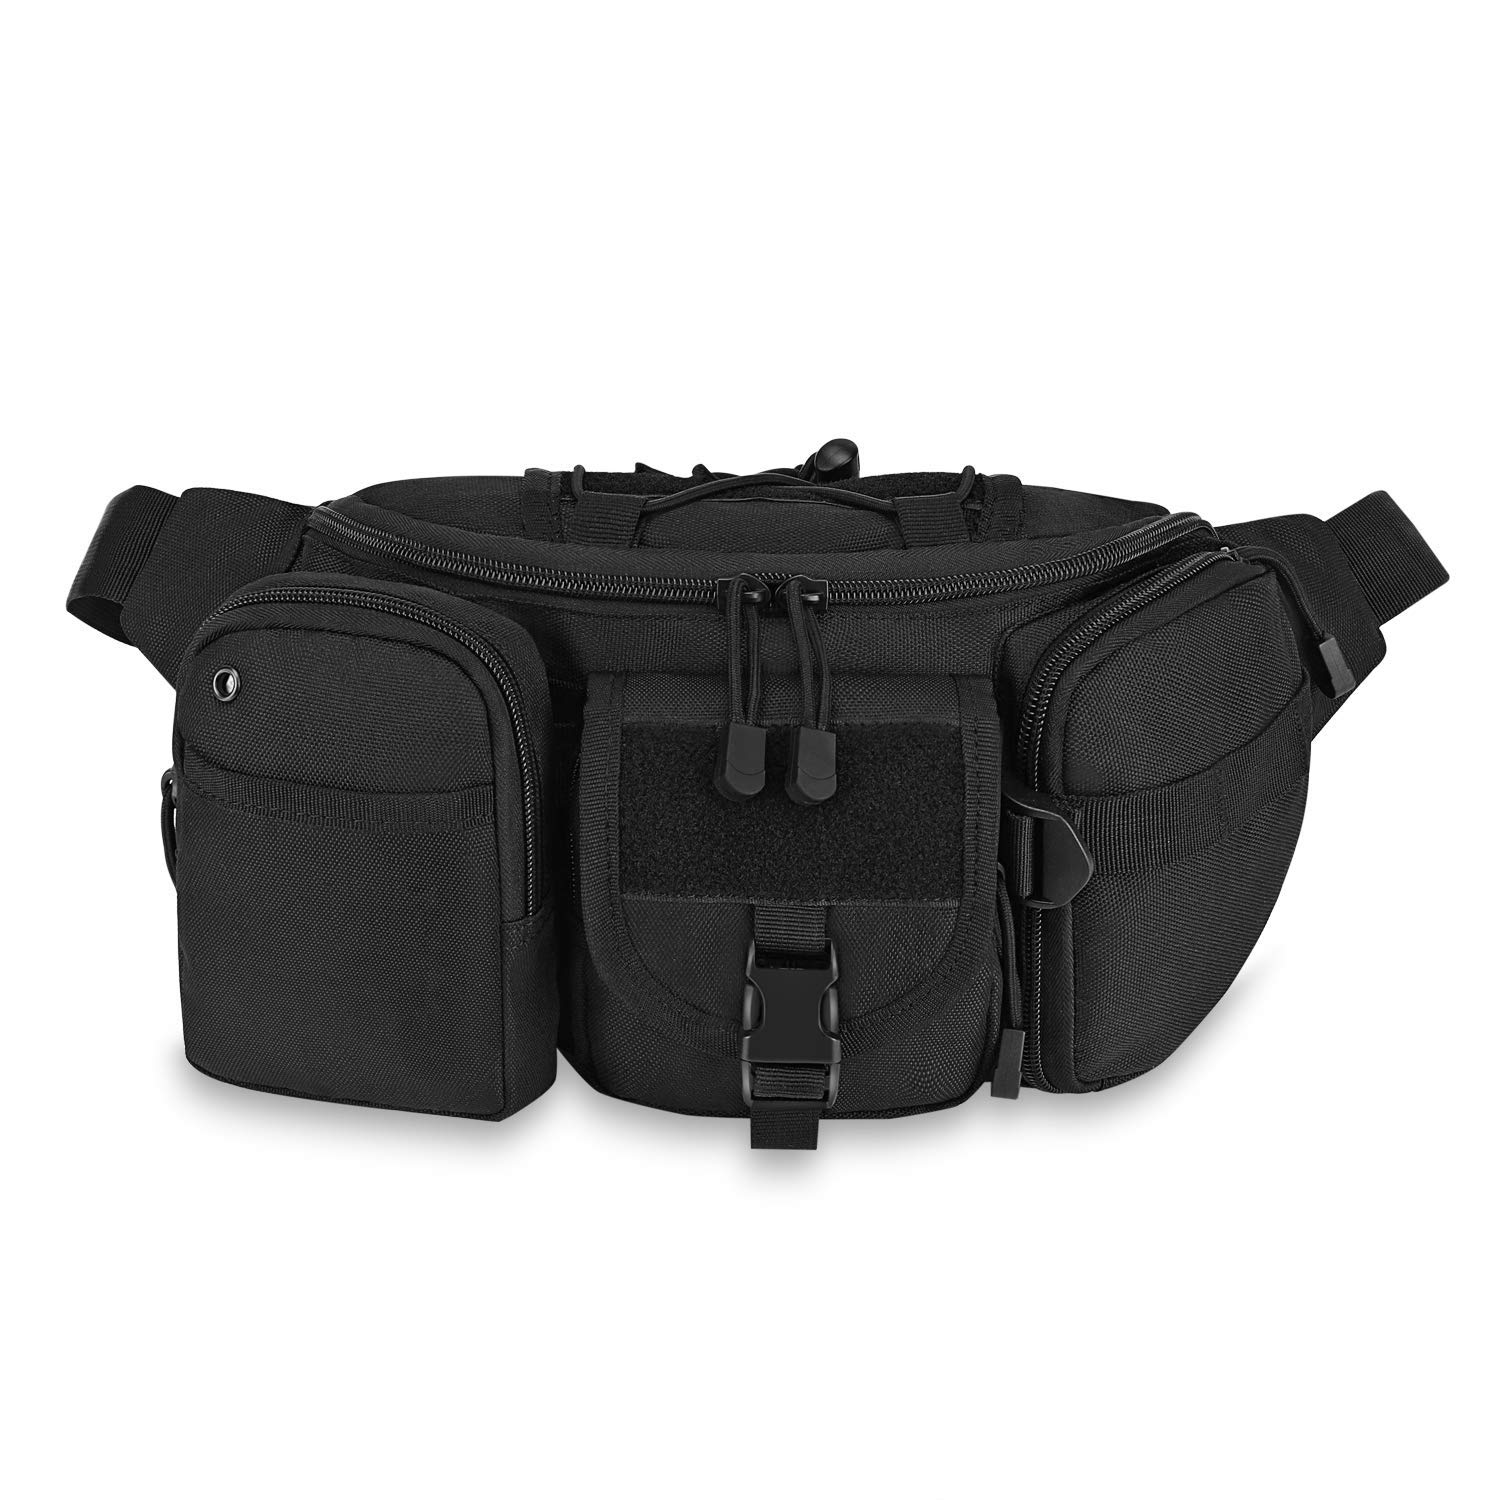 Barbarians Tactical Fanny Pack Military MOLLE Waist Pack Bag with Tactical Pouch